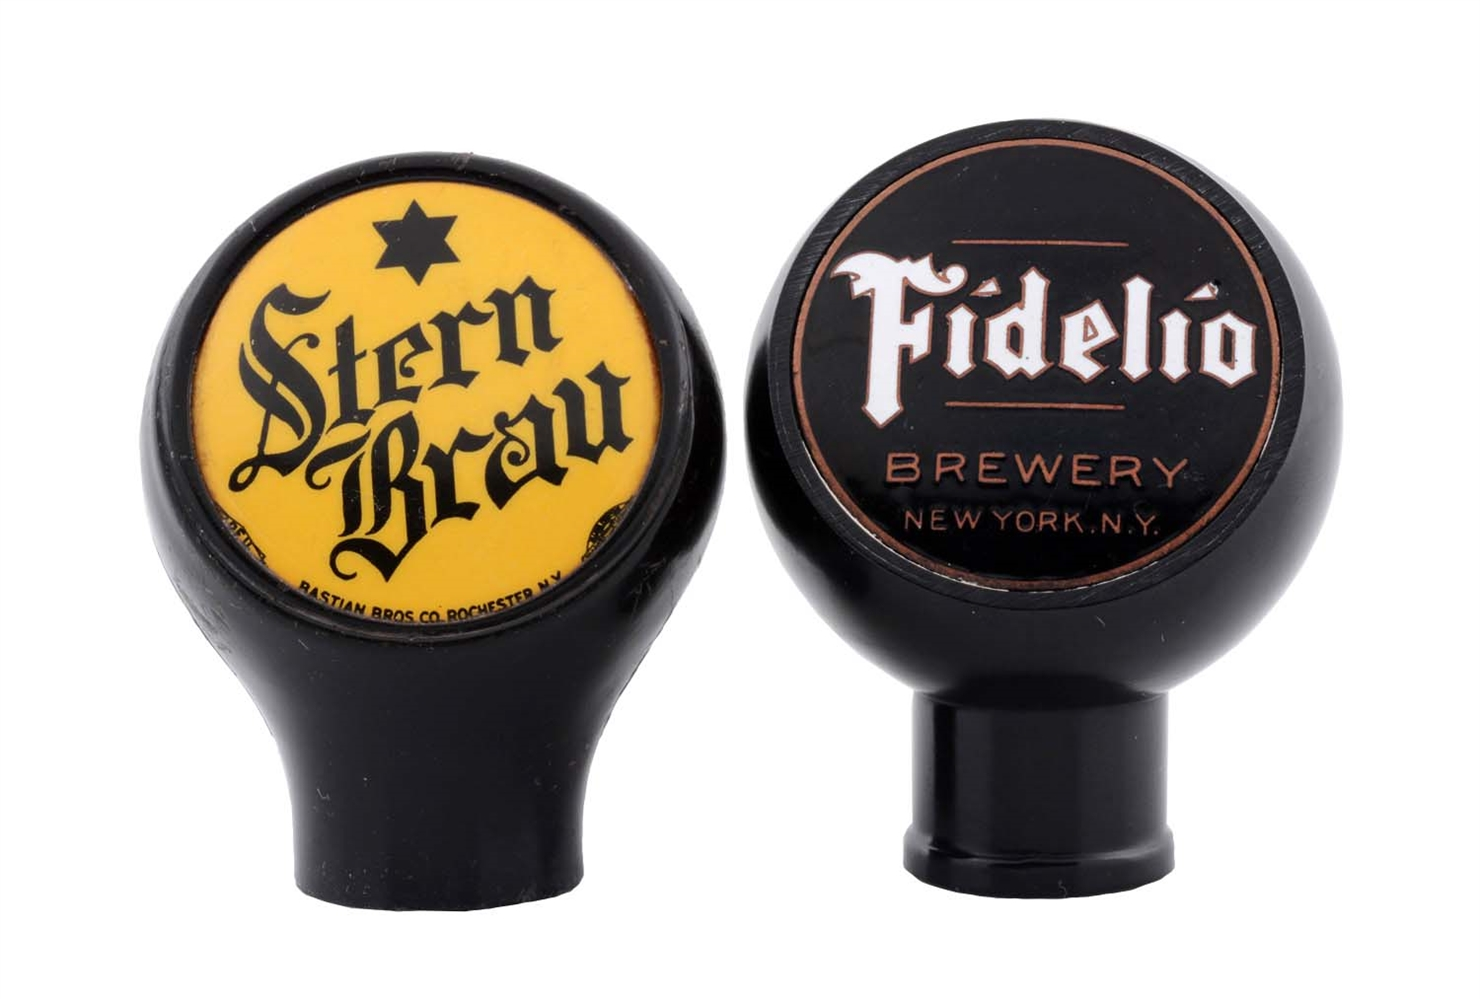 Lot Of 2: Stern Brau & Fidelio Beer Tap Knobs.